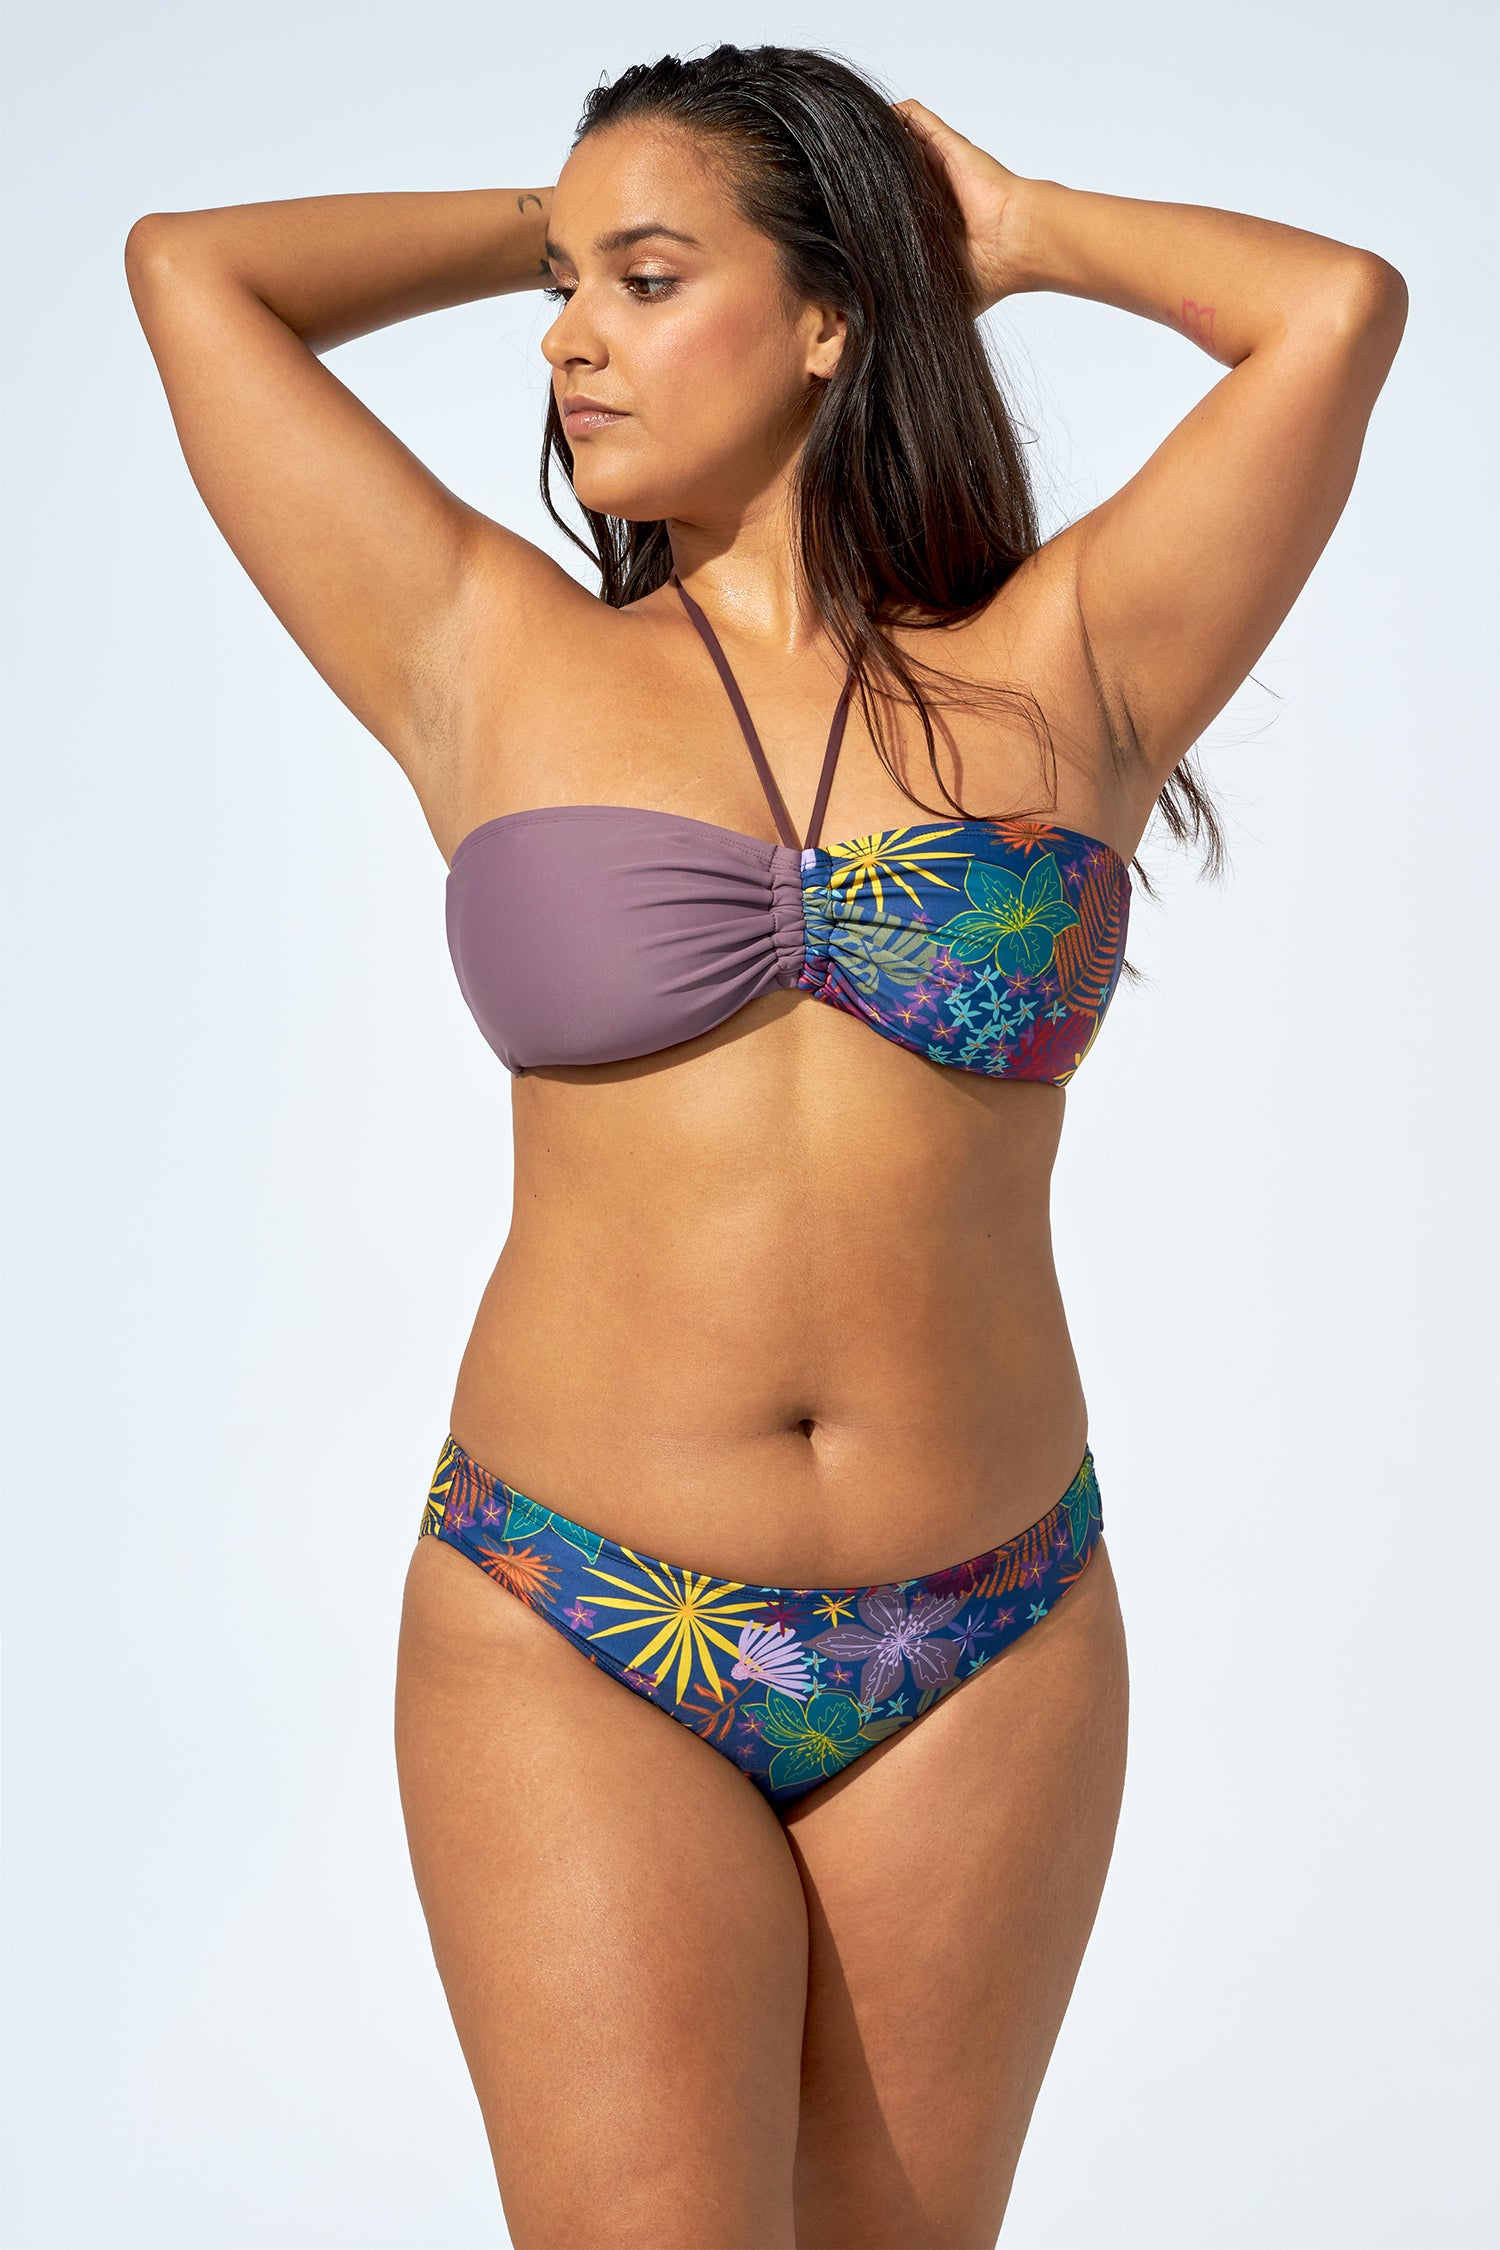 ELLA - Bikini top in soft purple & flower print